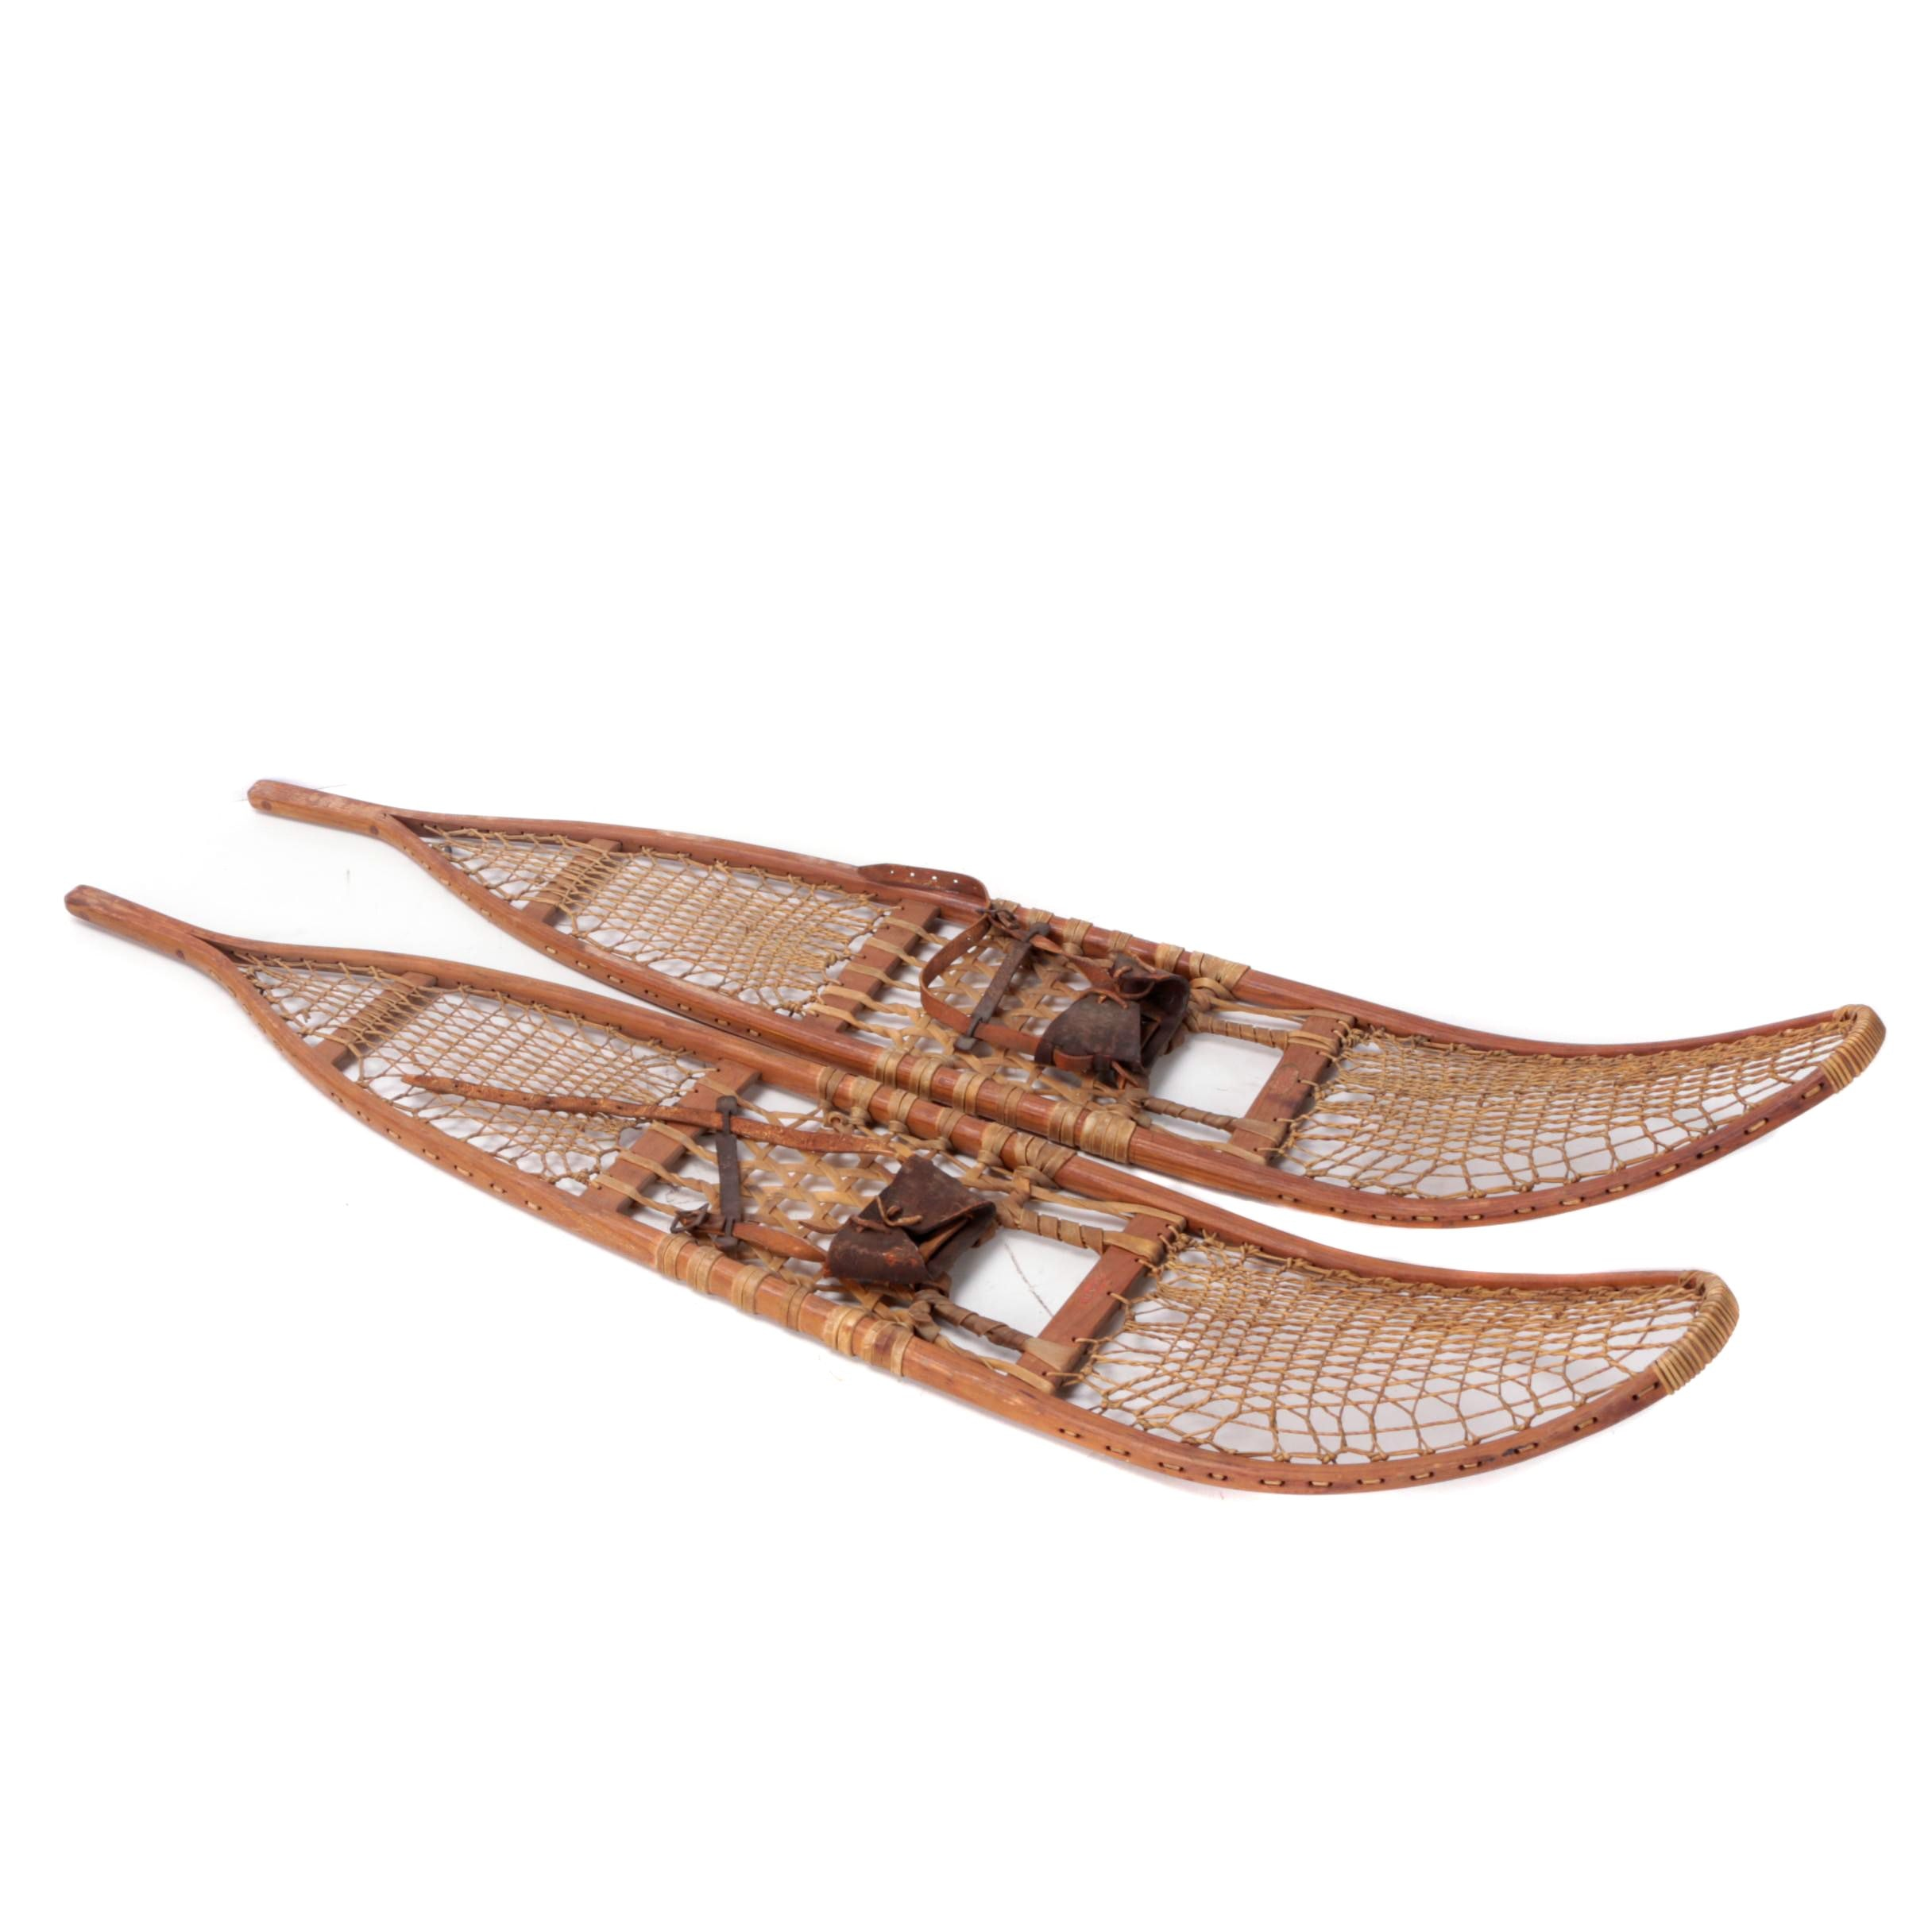 Lund Wooden and Rawhide Military Snowshoes